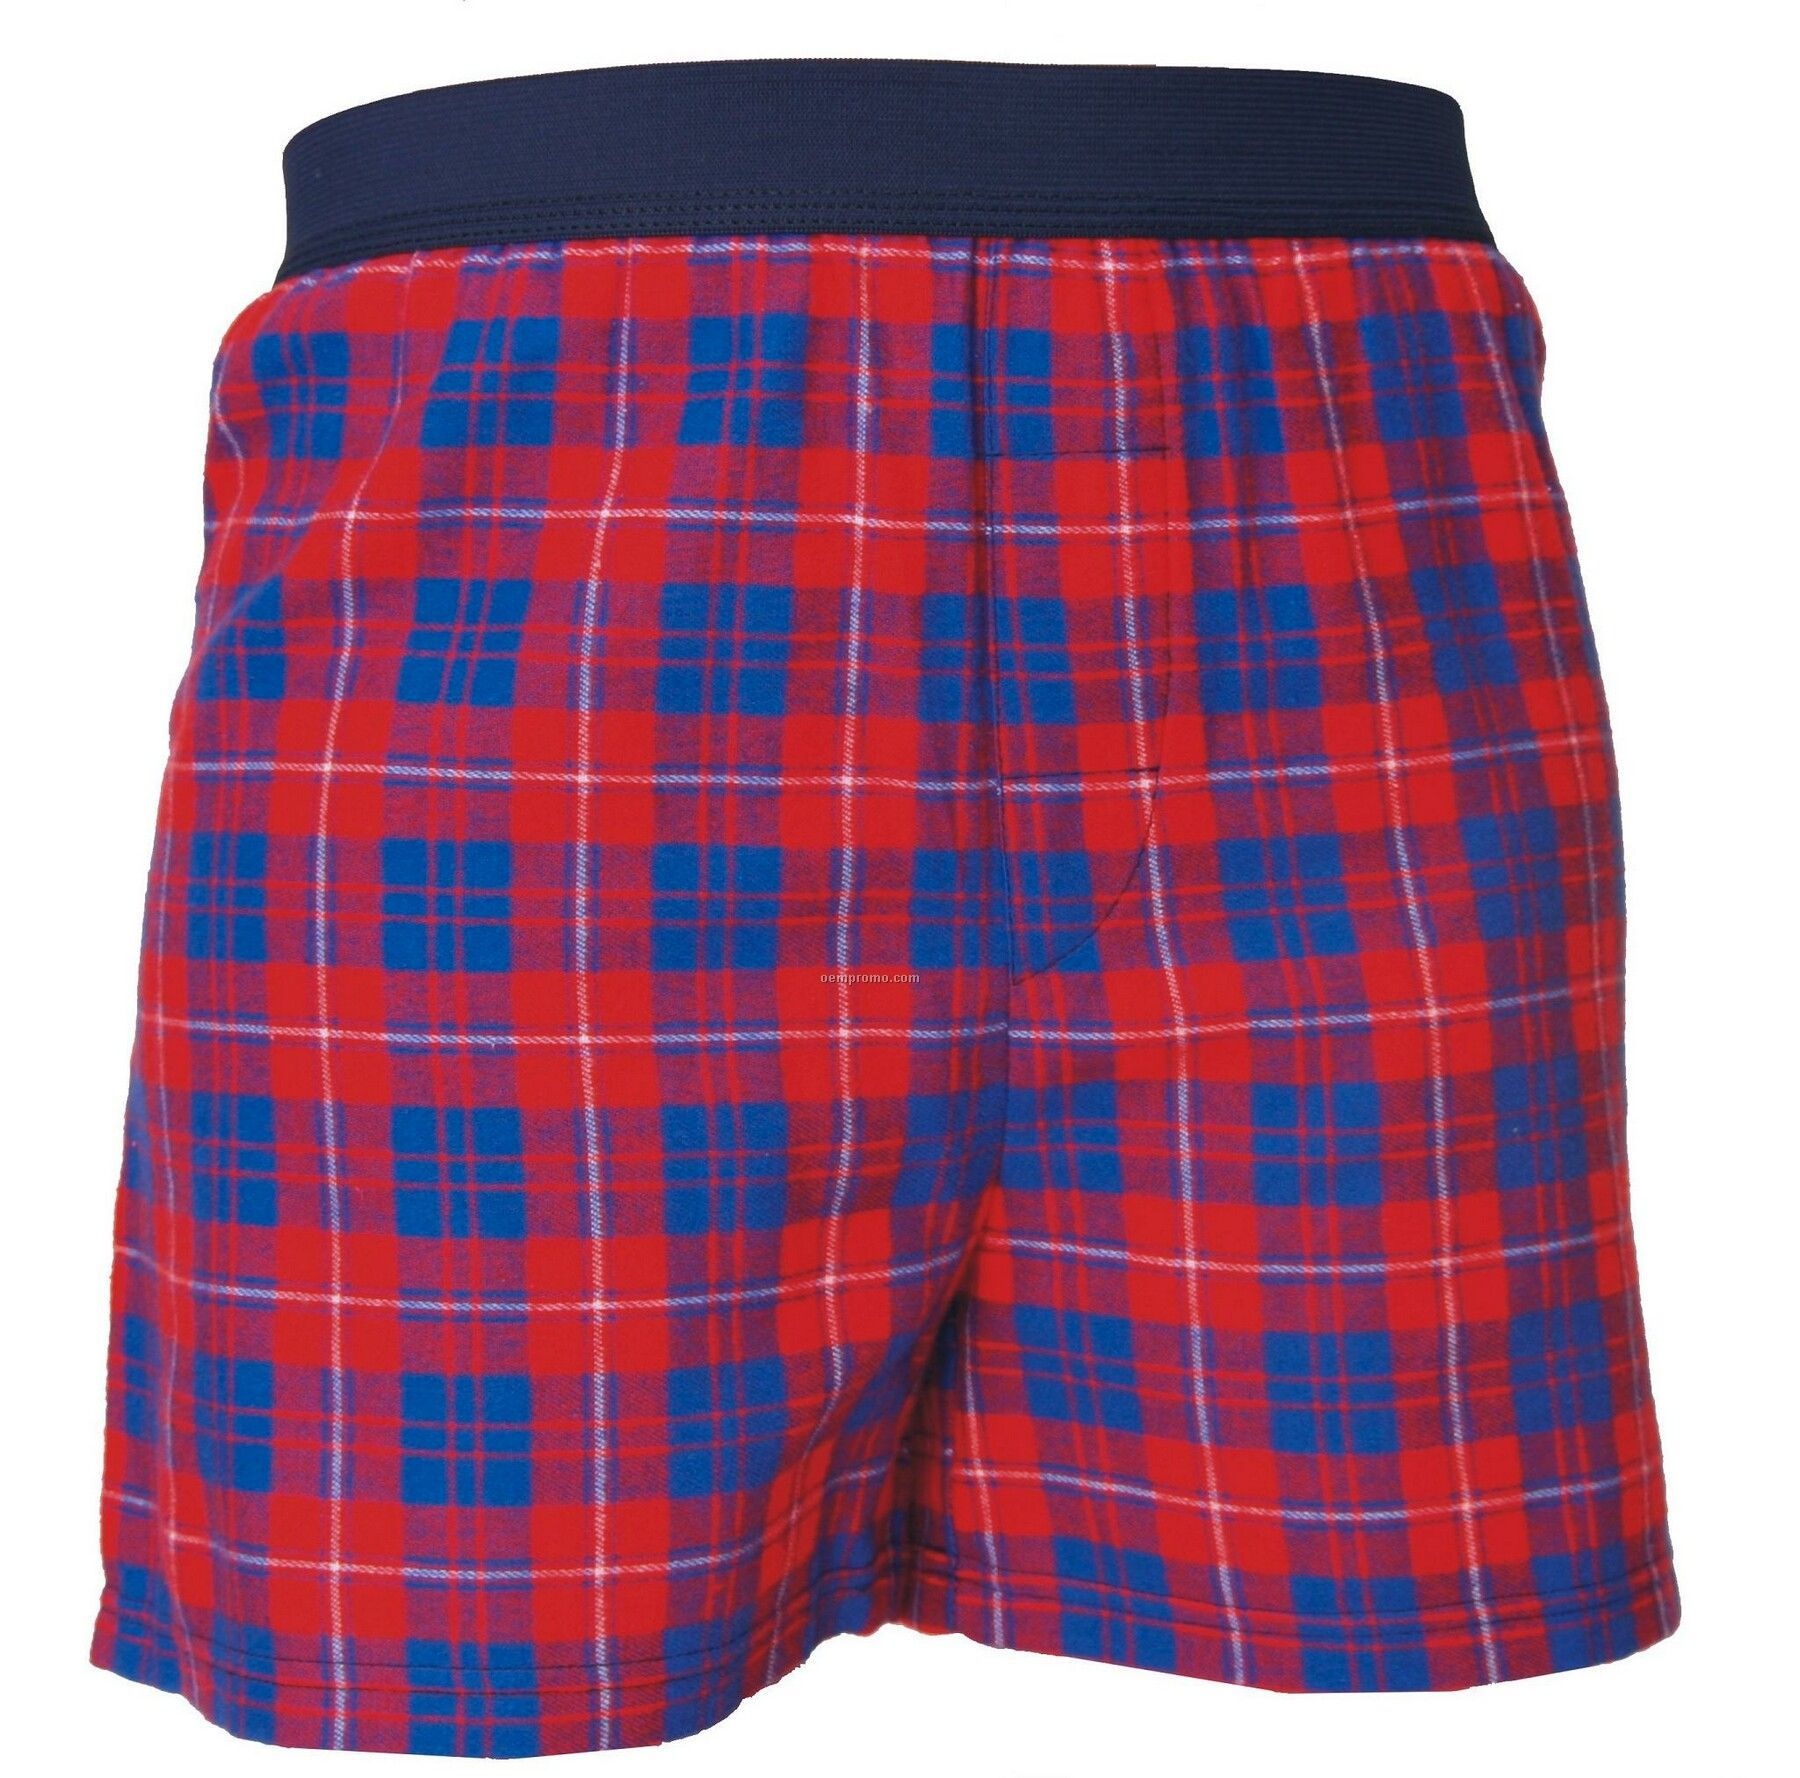 Youth Blue/Red Plaid Classic Boxer Short